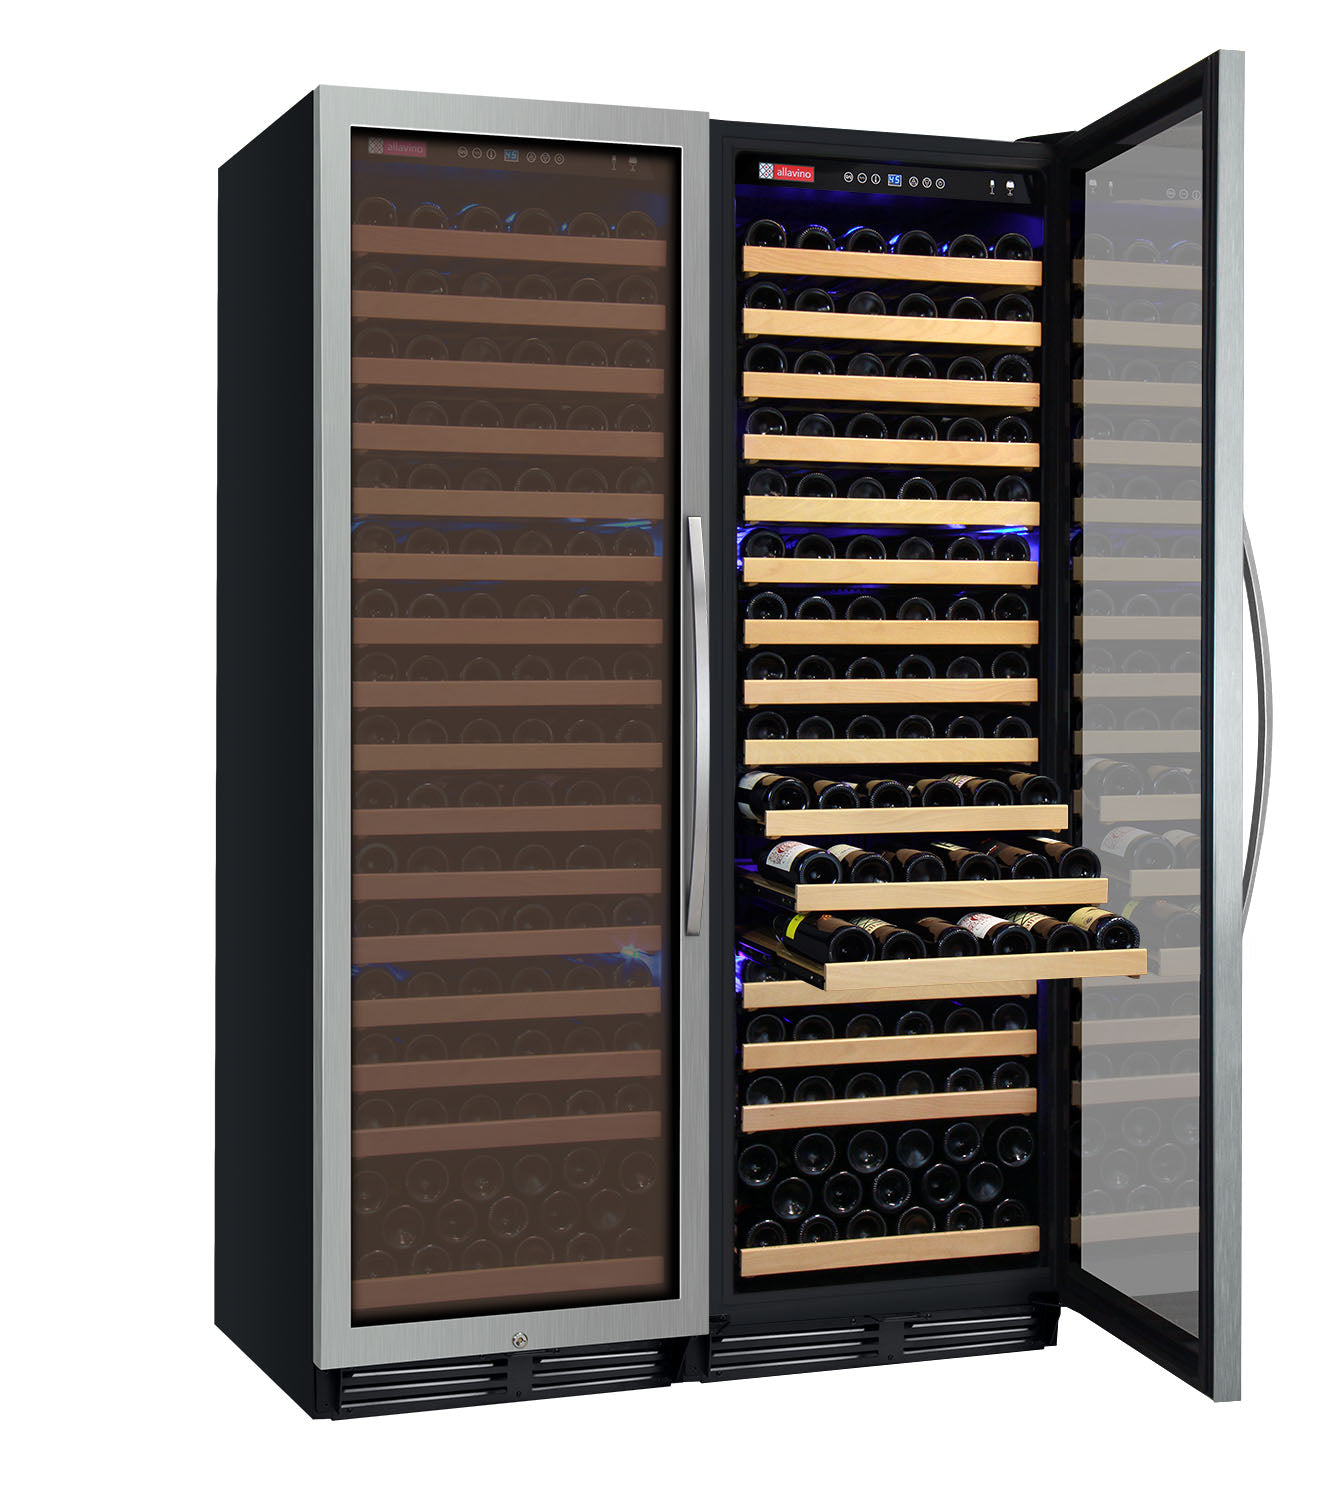 "Allavino 48"" Wide FlexCount Classic II Tru-Vino 348 Bottle Dual Zone Stainless Steel Side-by-Side Wine Refrigerator"